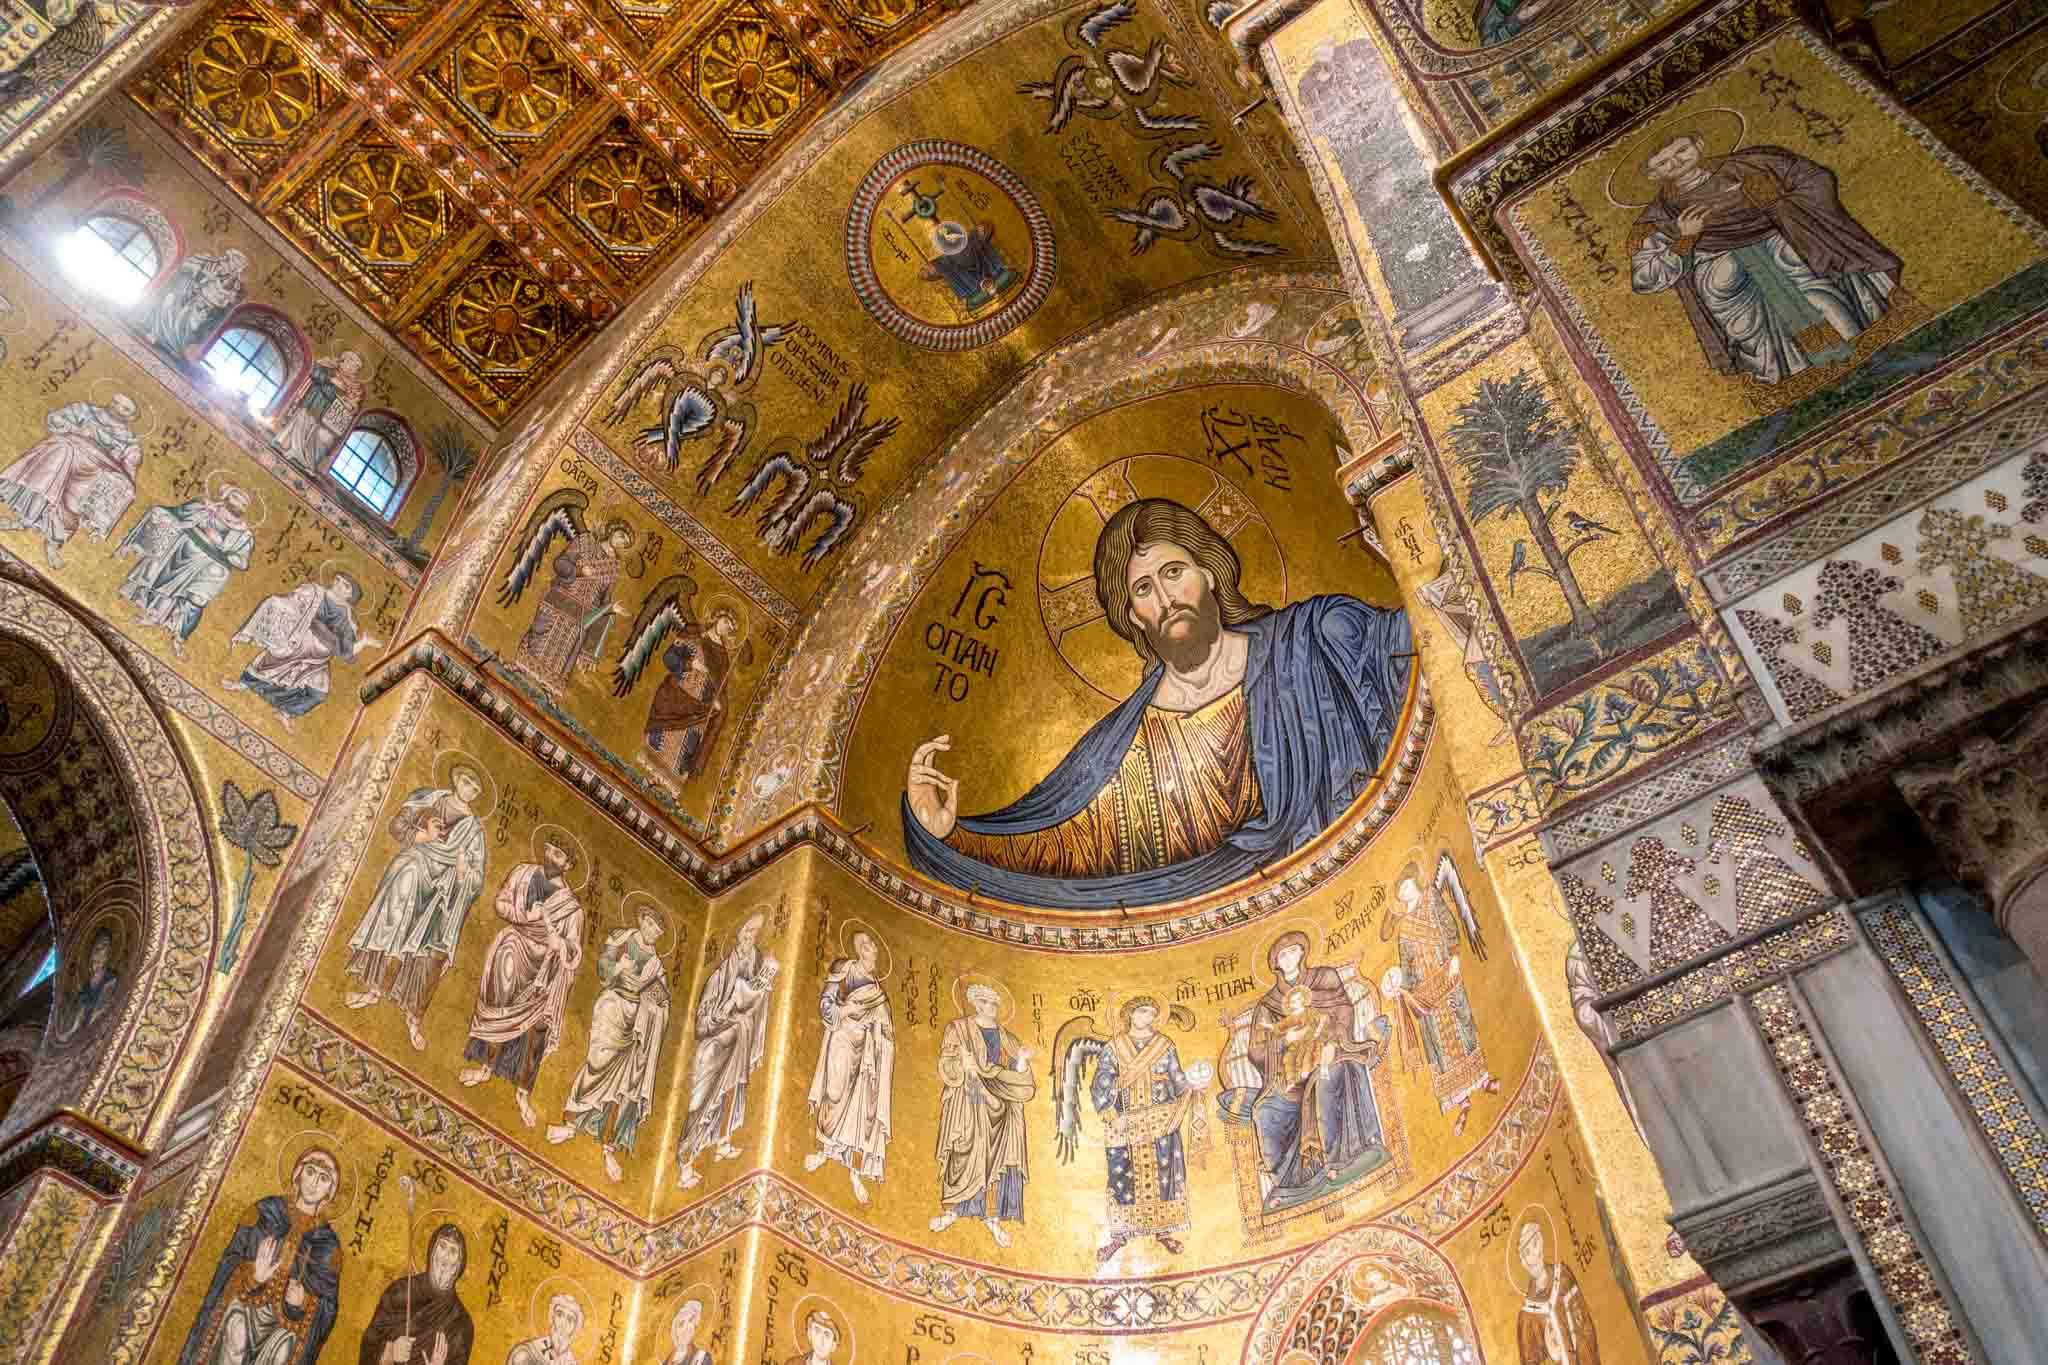 Large tile and gold mosaics of Jesus and the saints